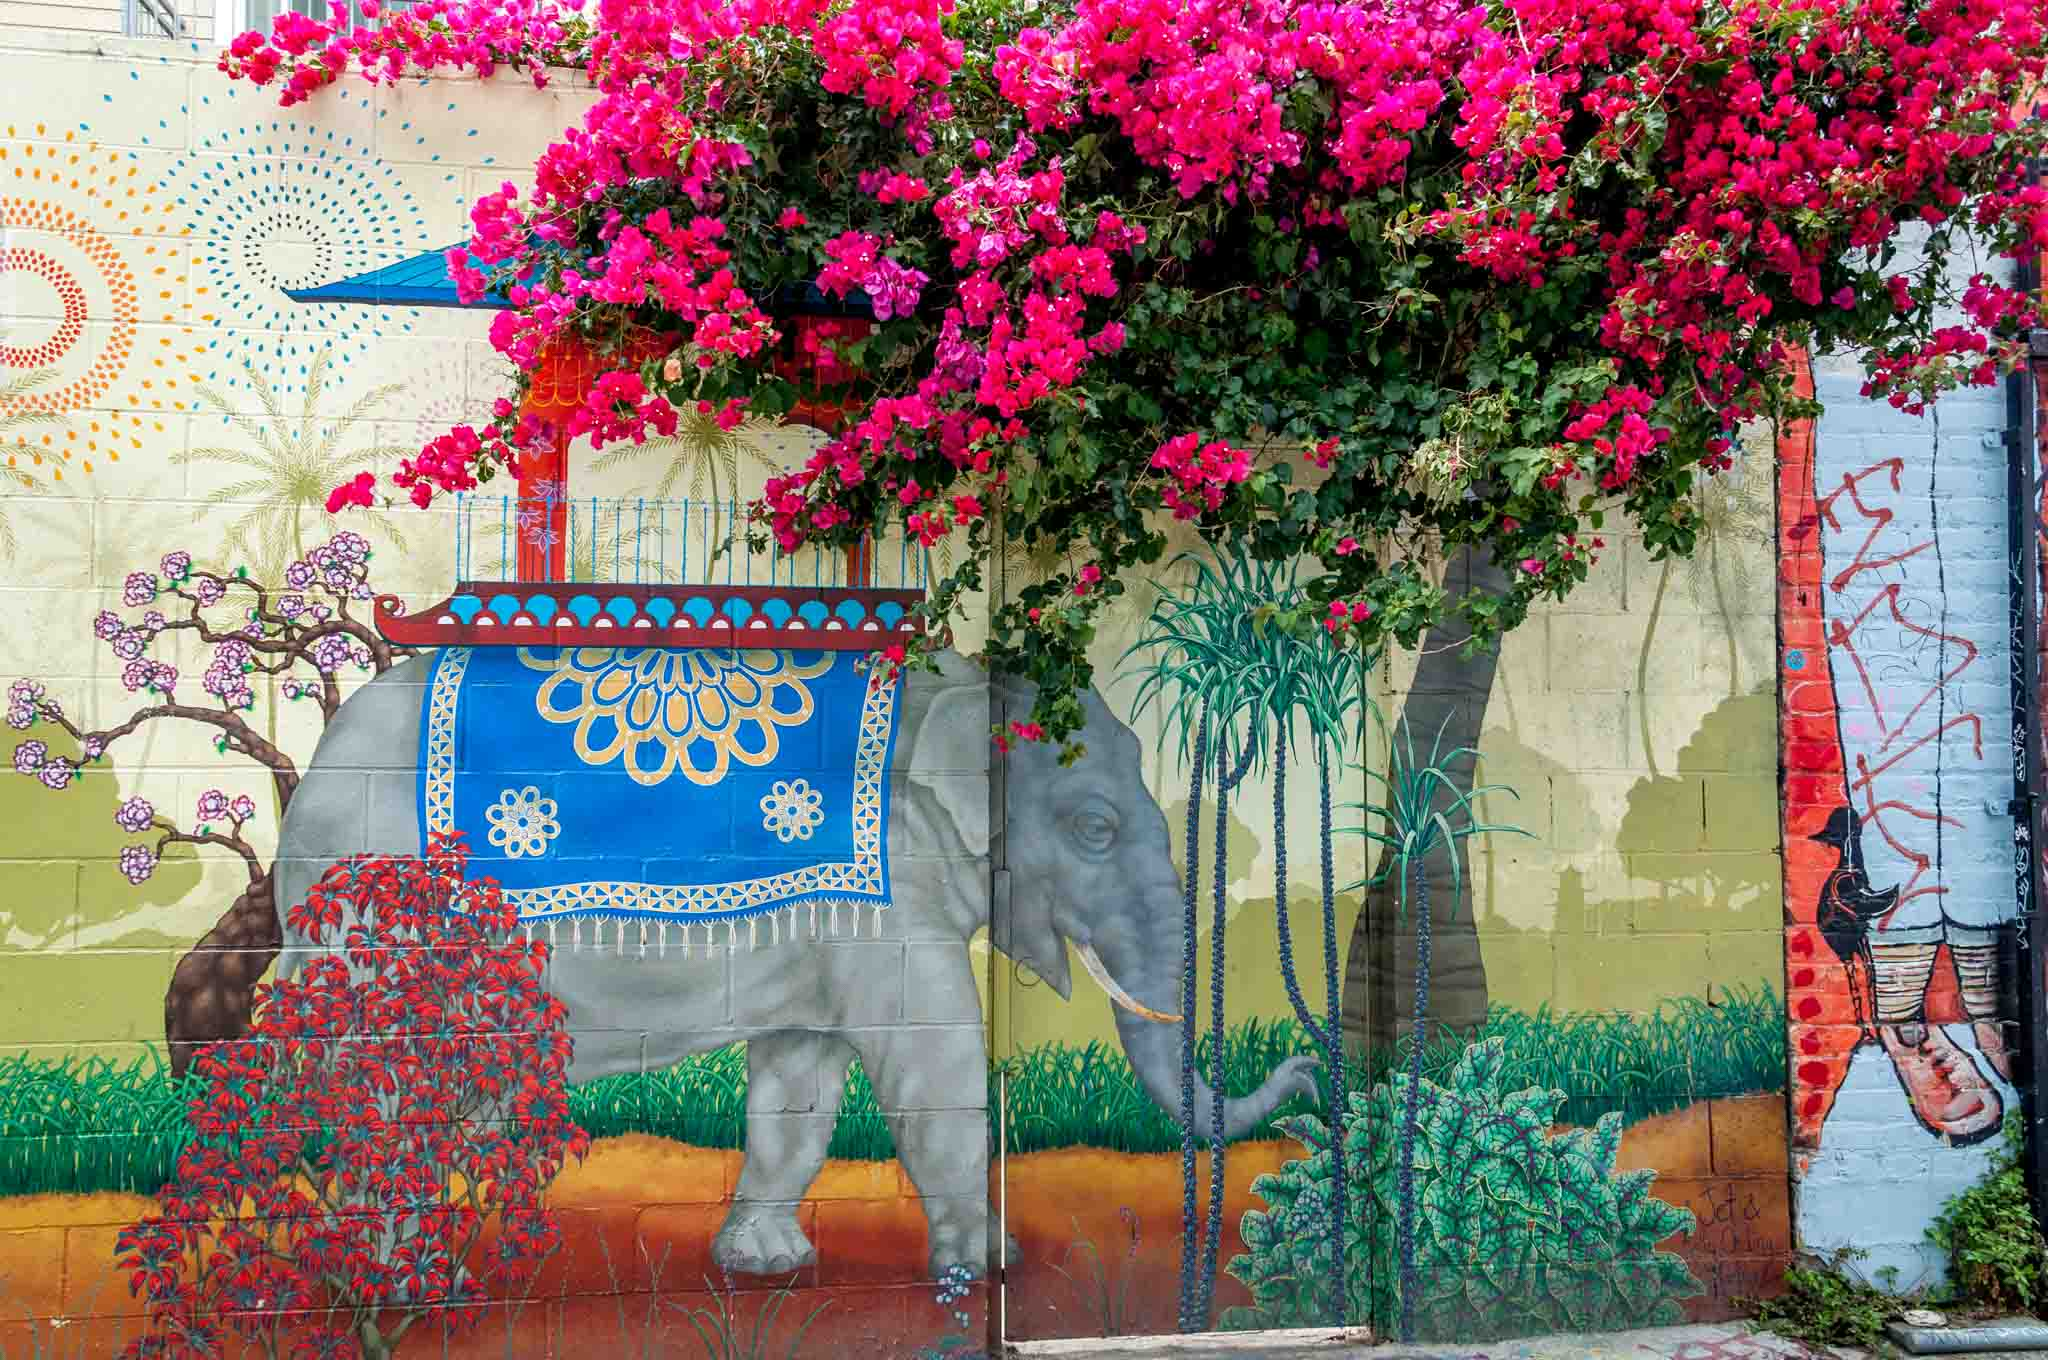 Elephant mural in Clarion Alley that combines with a tree with pink flowers